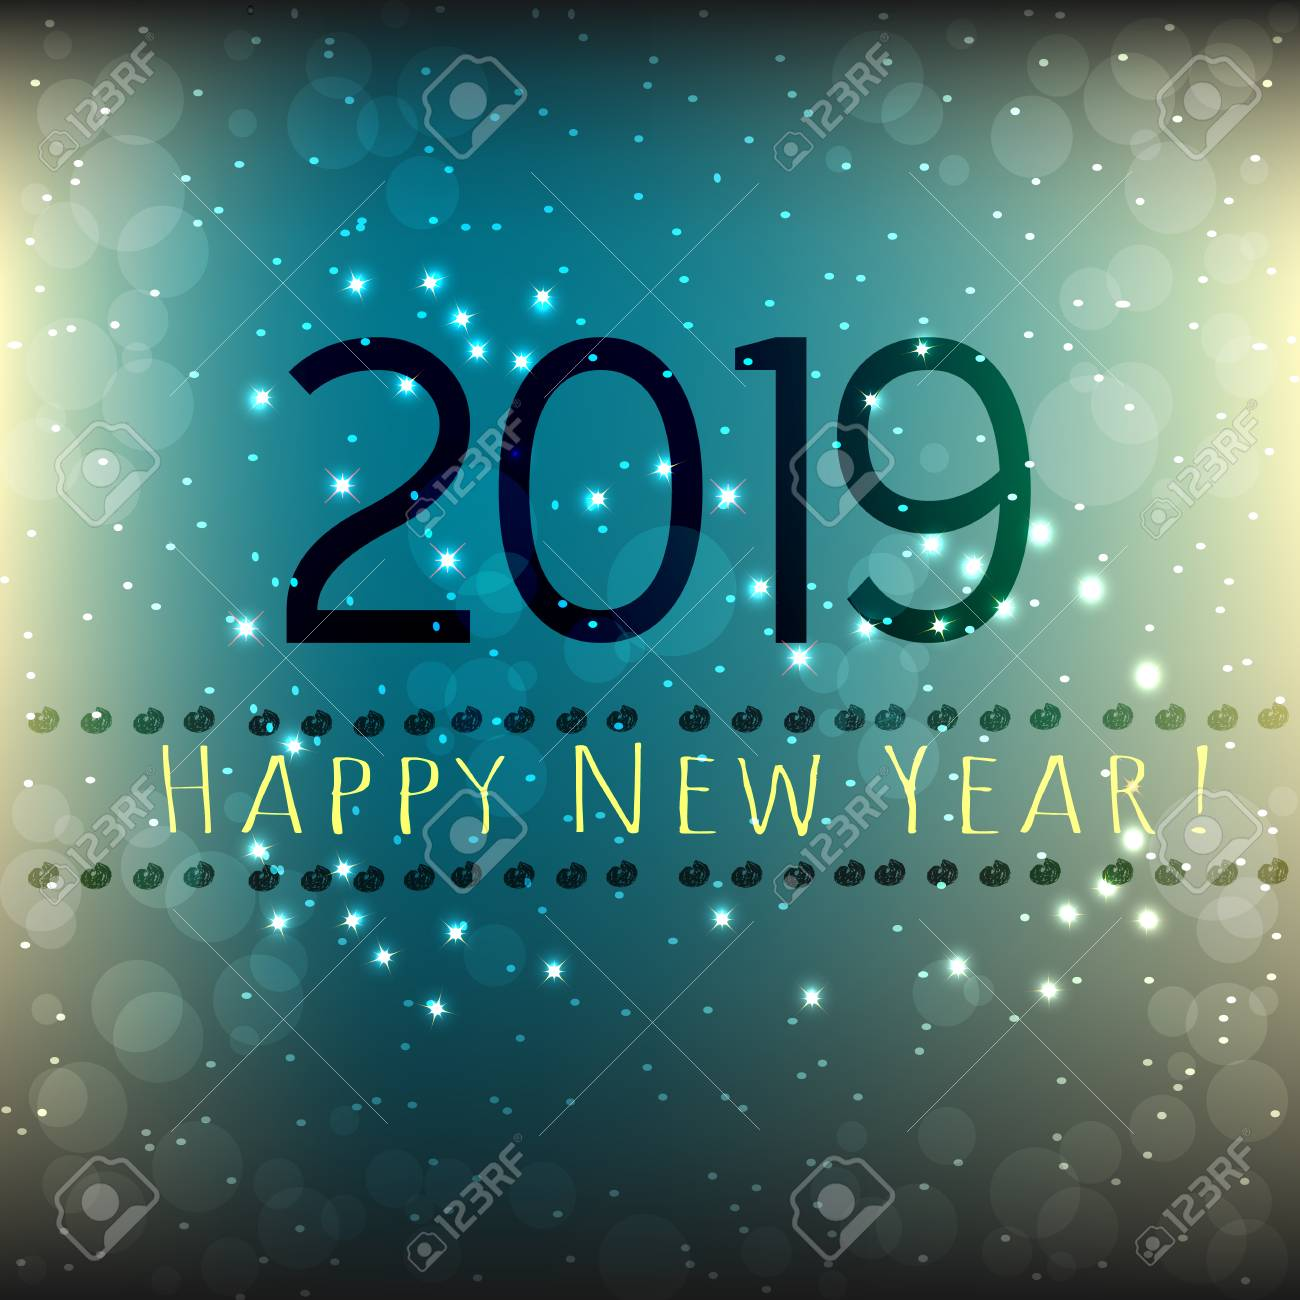 happy new year 2019 card abstract dark blue and grey background with stars vector